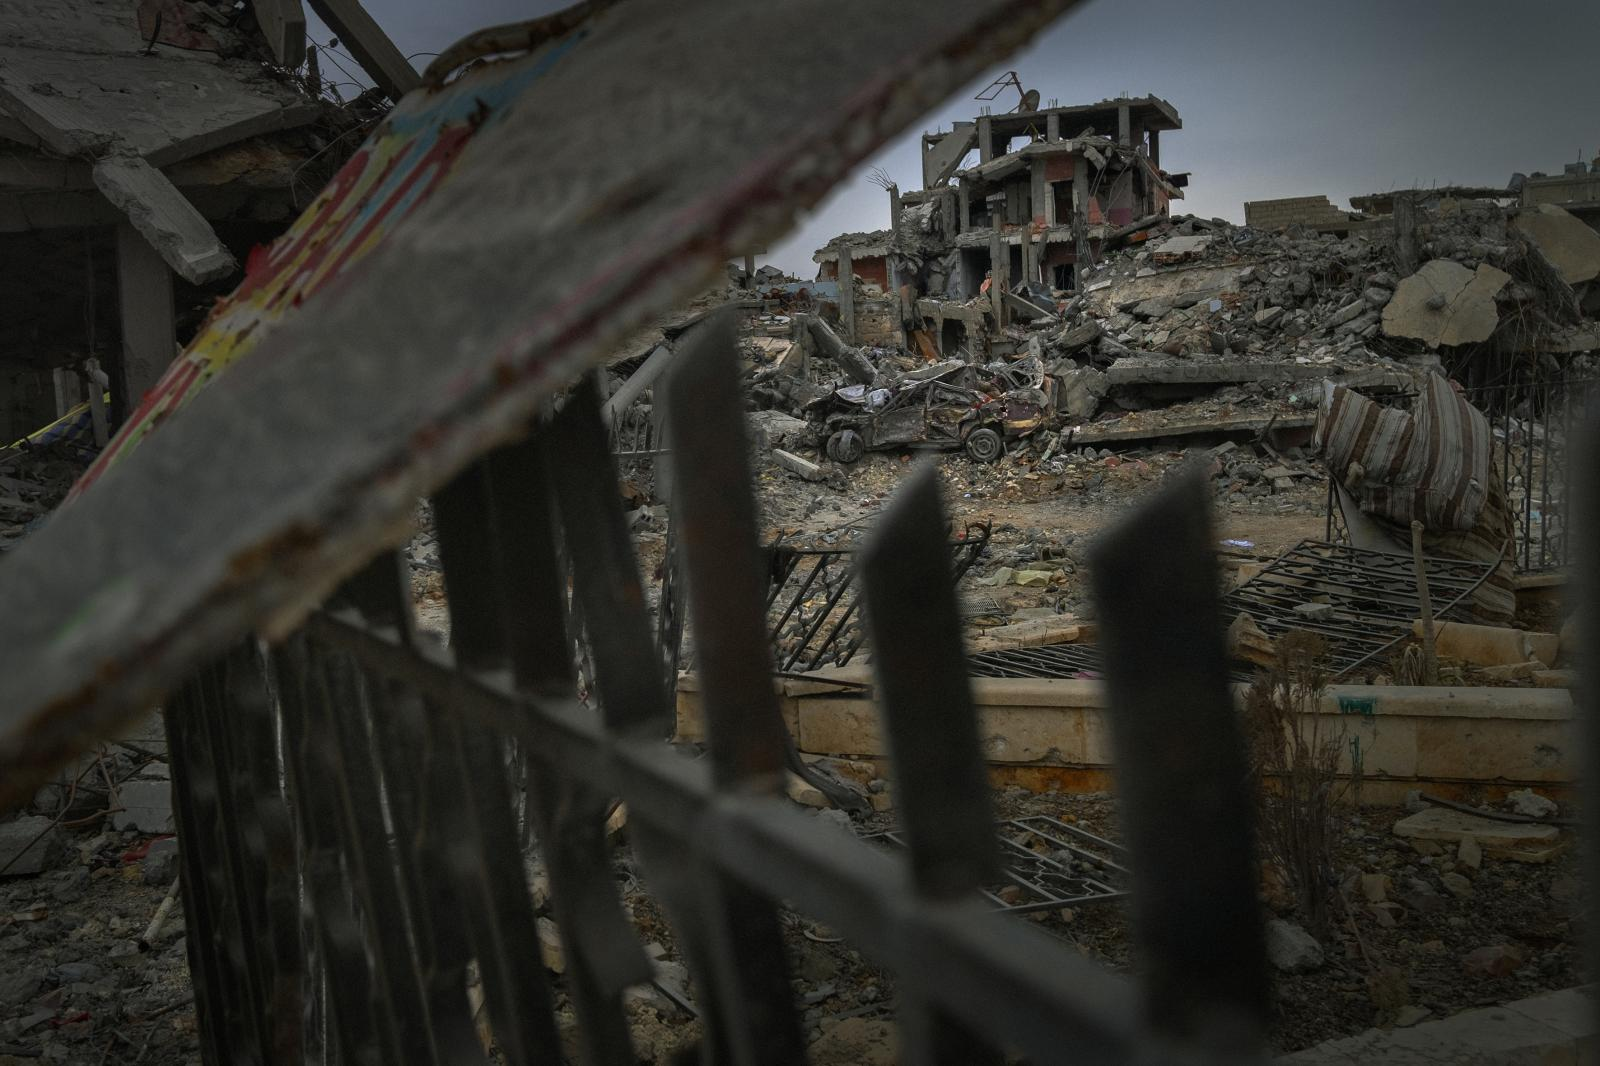 Image of the destroyed main street in the city of Kobane . Seventy percent of the city was reduced to ruins in the battle against ISIS . Today, entire buildings still have yet to be rebuilt. This battle marked the first major defeat for ISIS (Syria, 2015 )